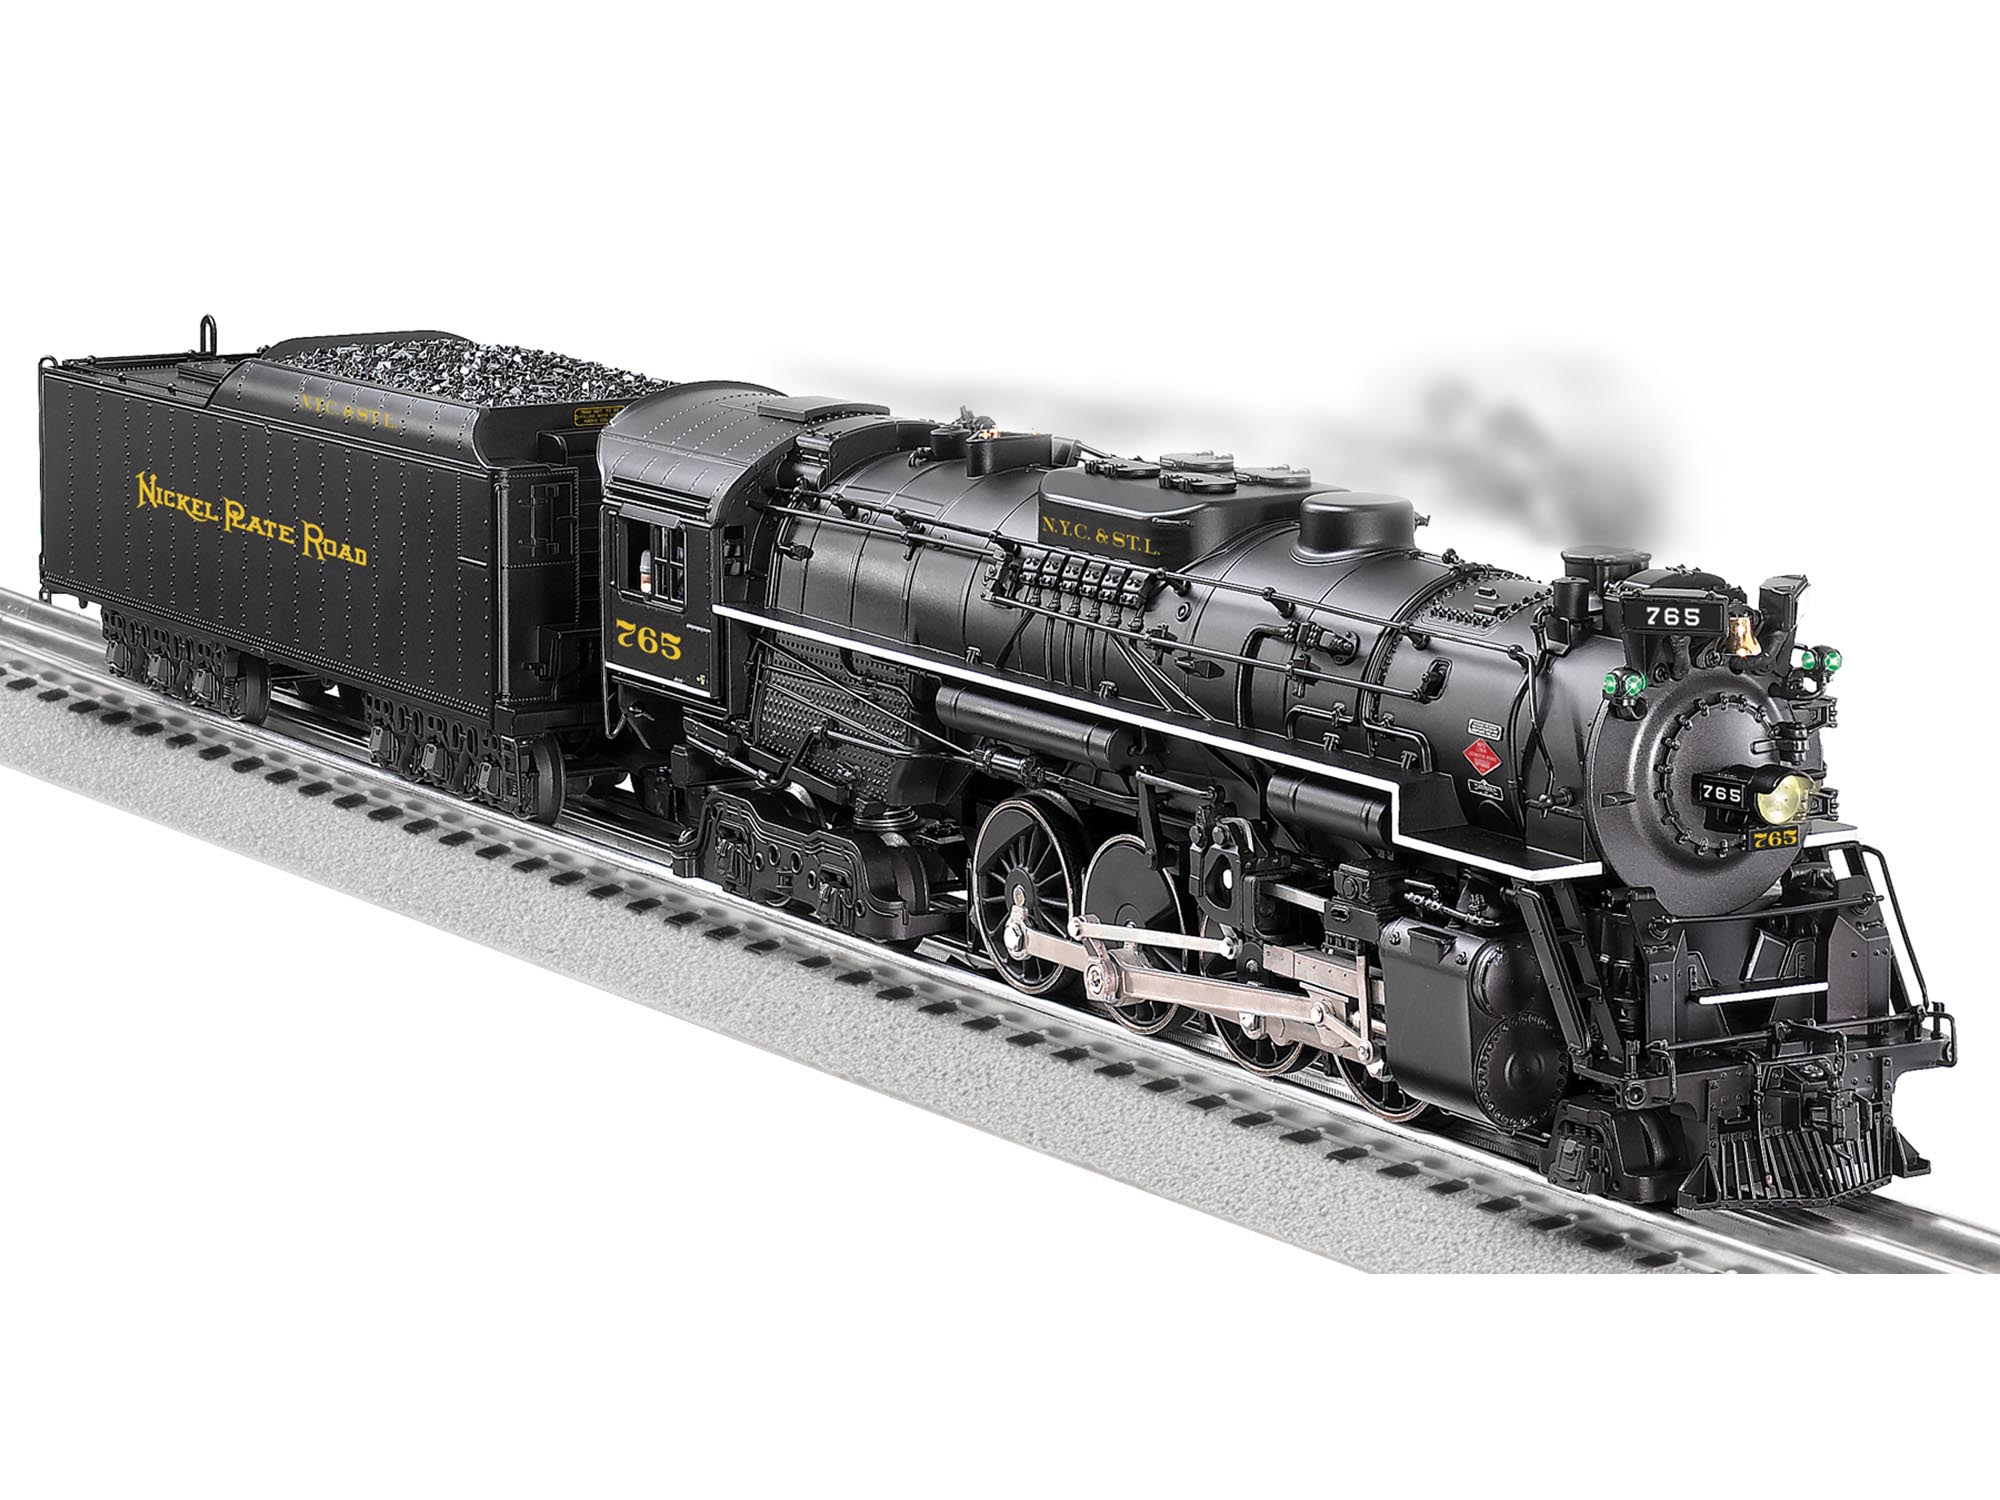 611454 1 nickel plate legacy scale berkshire 2 8 4 steam locomotive 765  at creativeand.co